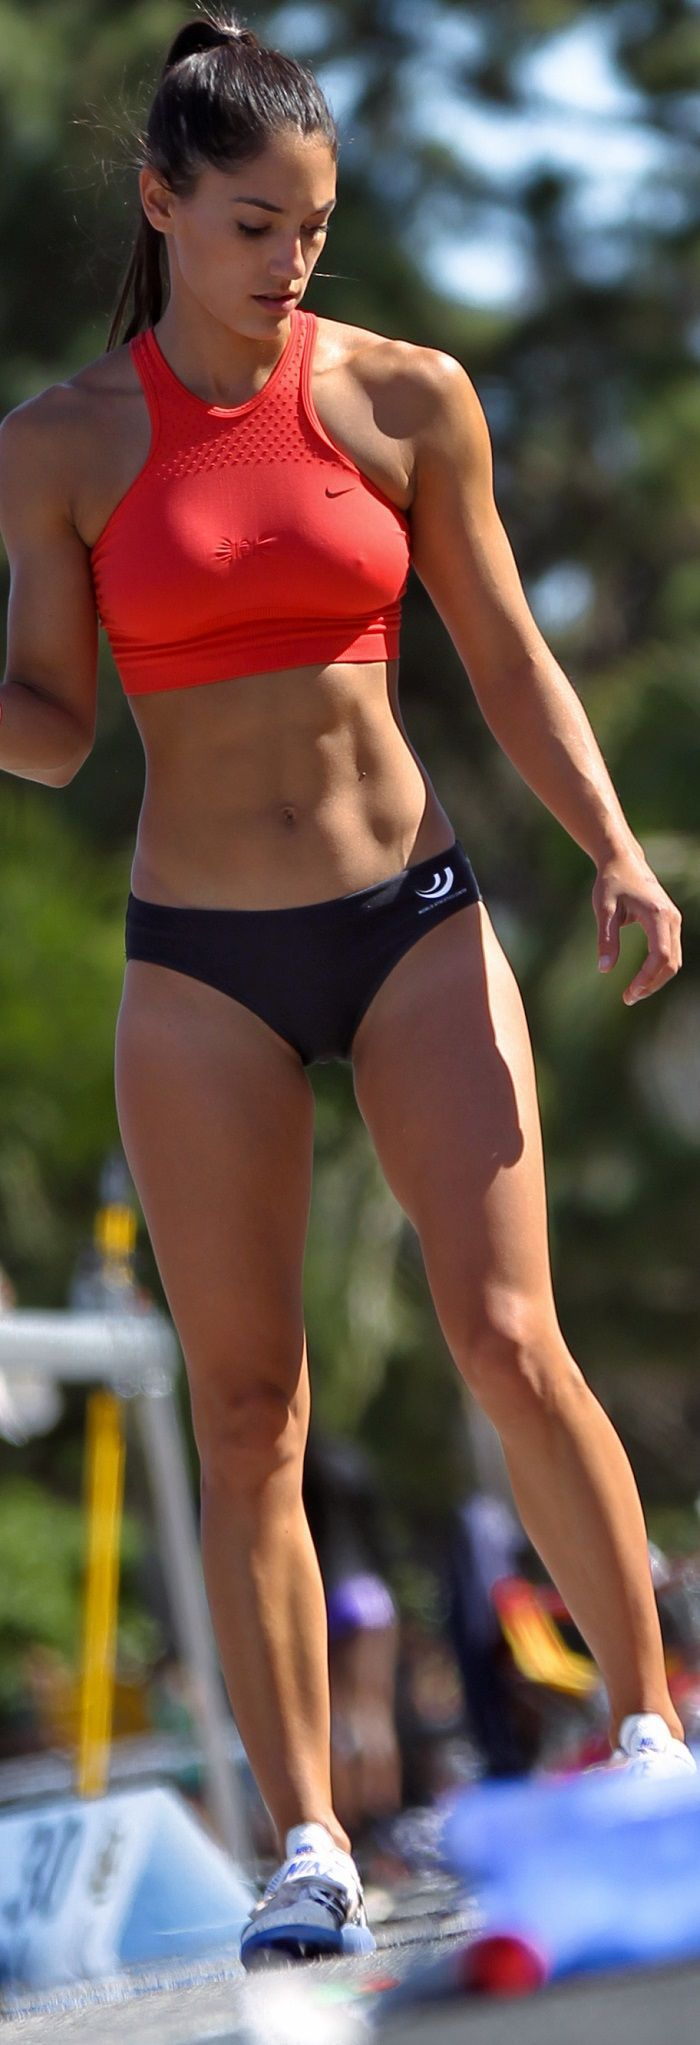 Allison Stokke  C - Cute Girls  Fitness, Fit Women -9663